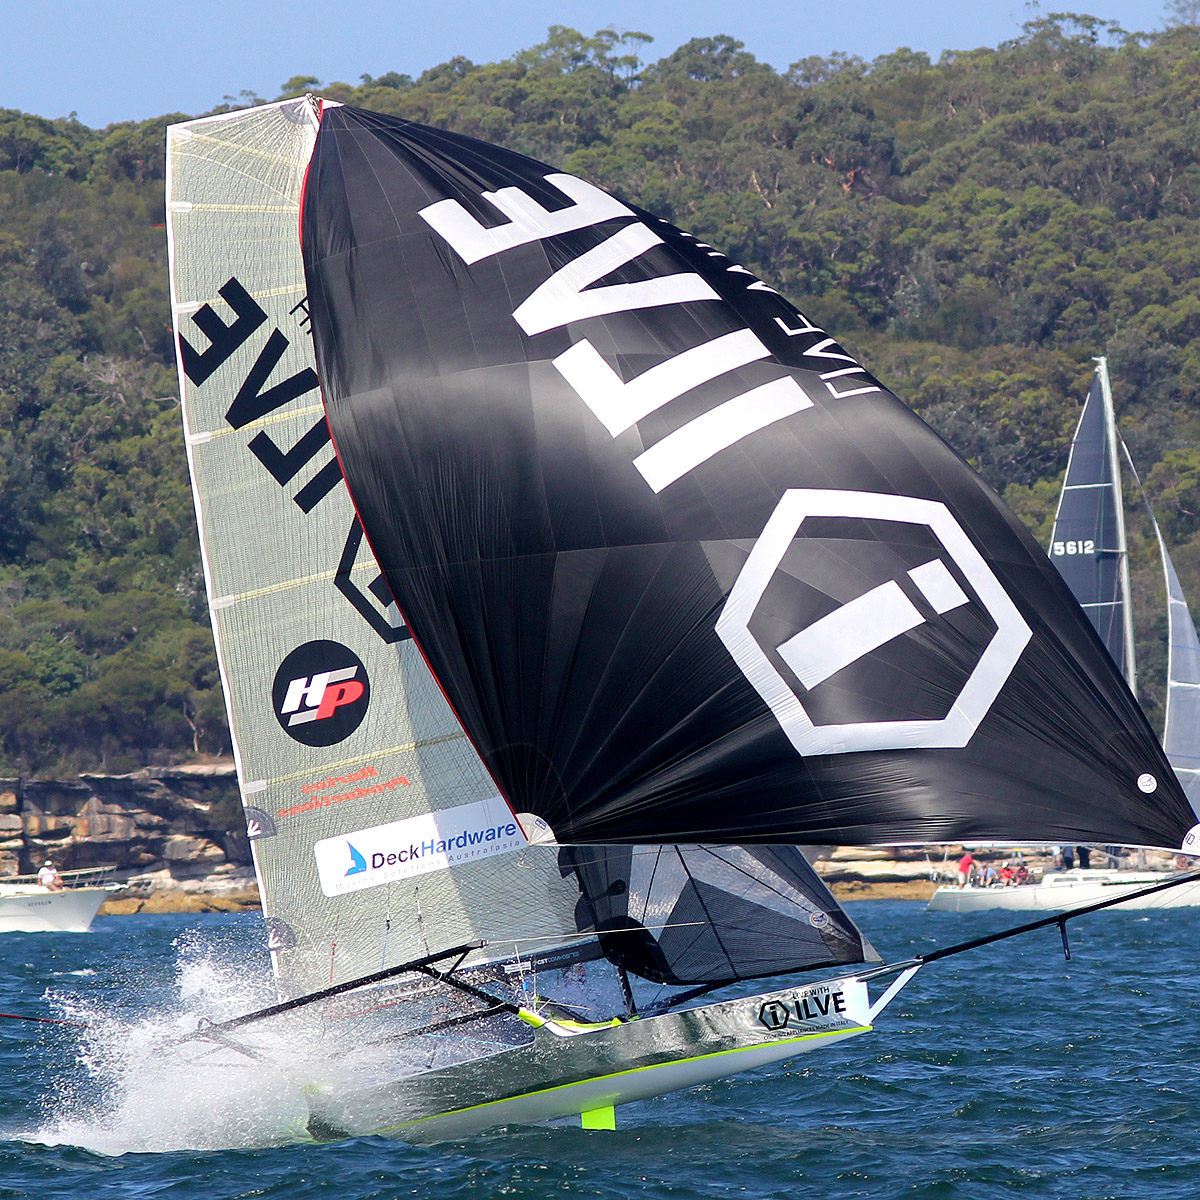 ilve-gained-on-the-spinnaker-run-down-the-middle-of-the-course-on-the-second-lap